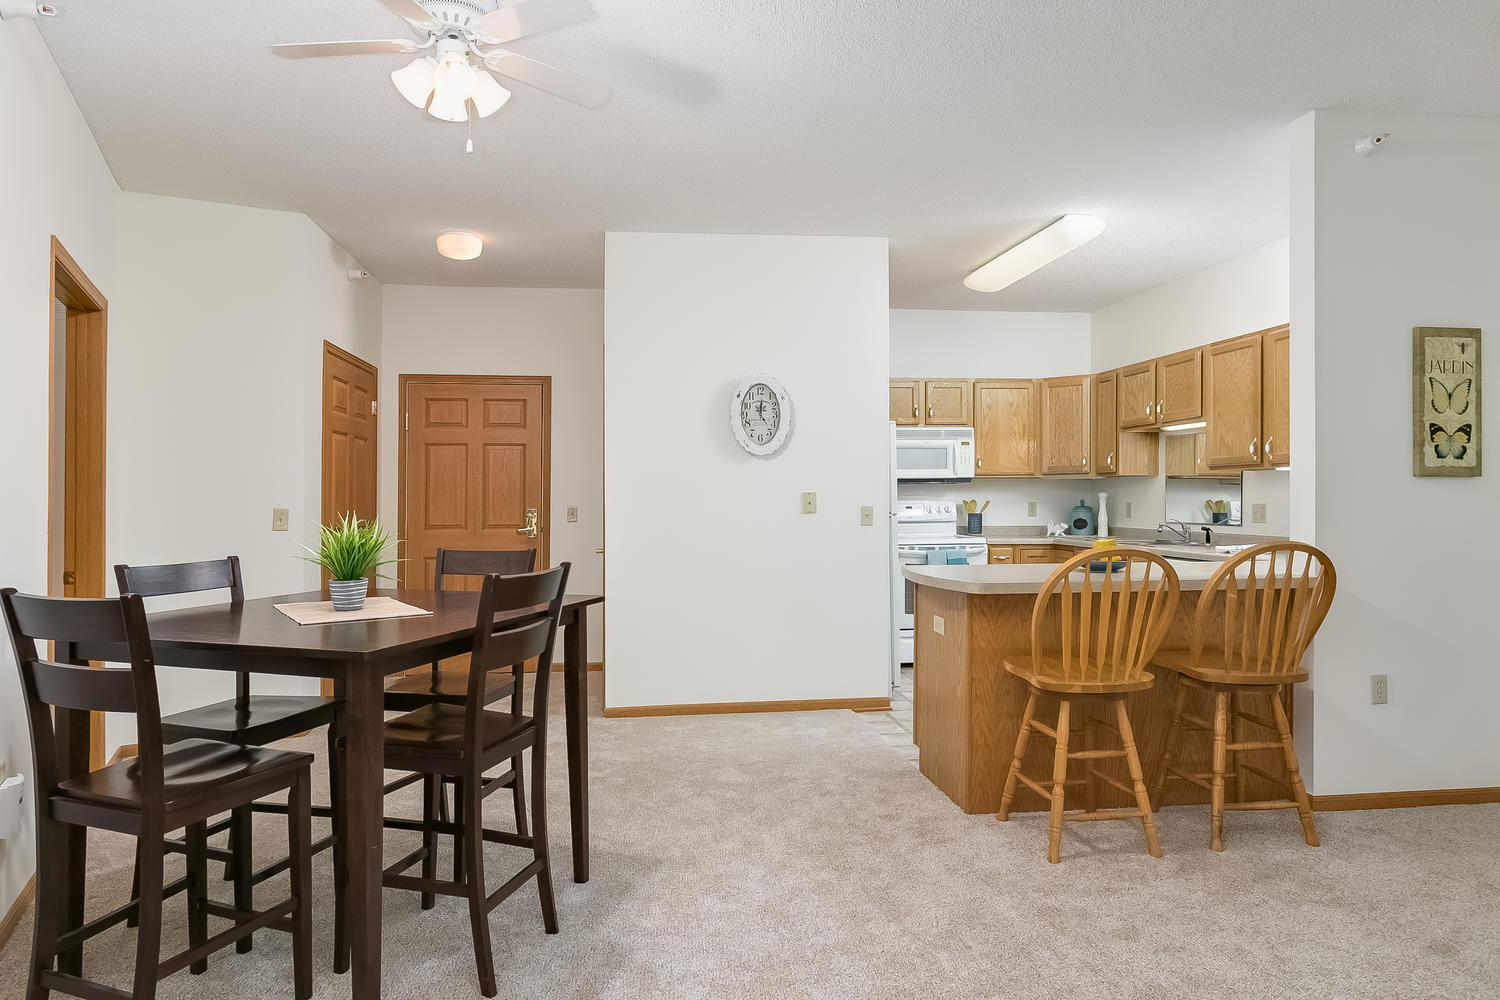 5650 Boone Ave N New Hope MN-large-002-011-Dining Area-1500x1000-72dpi.jpg